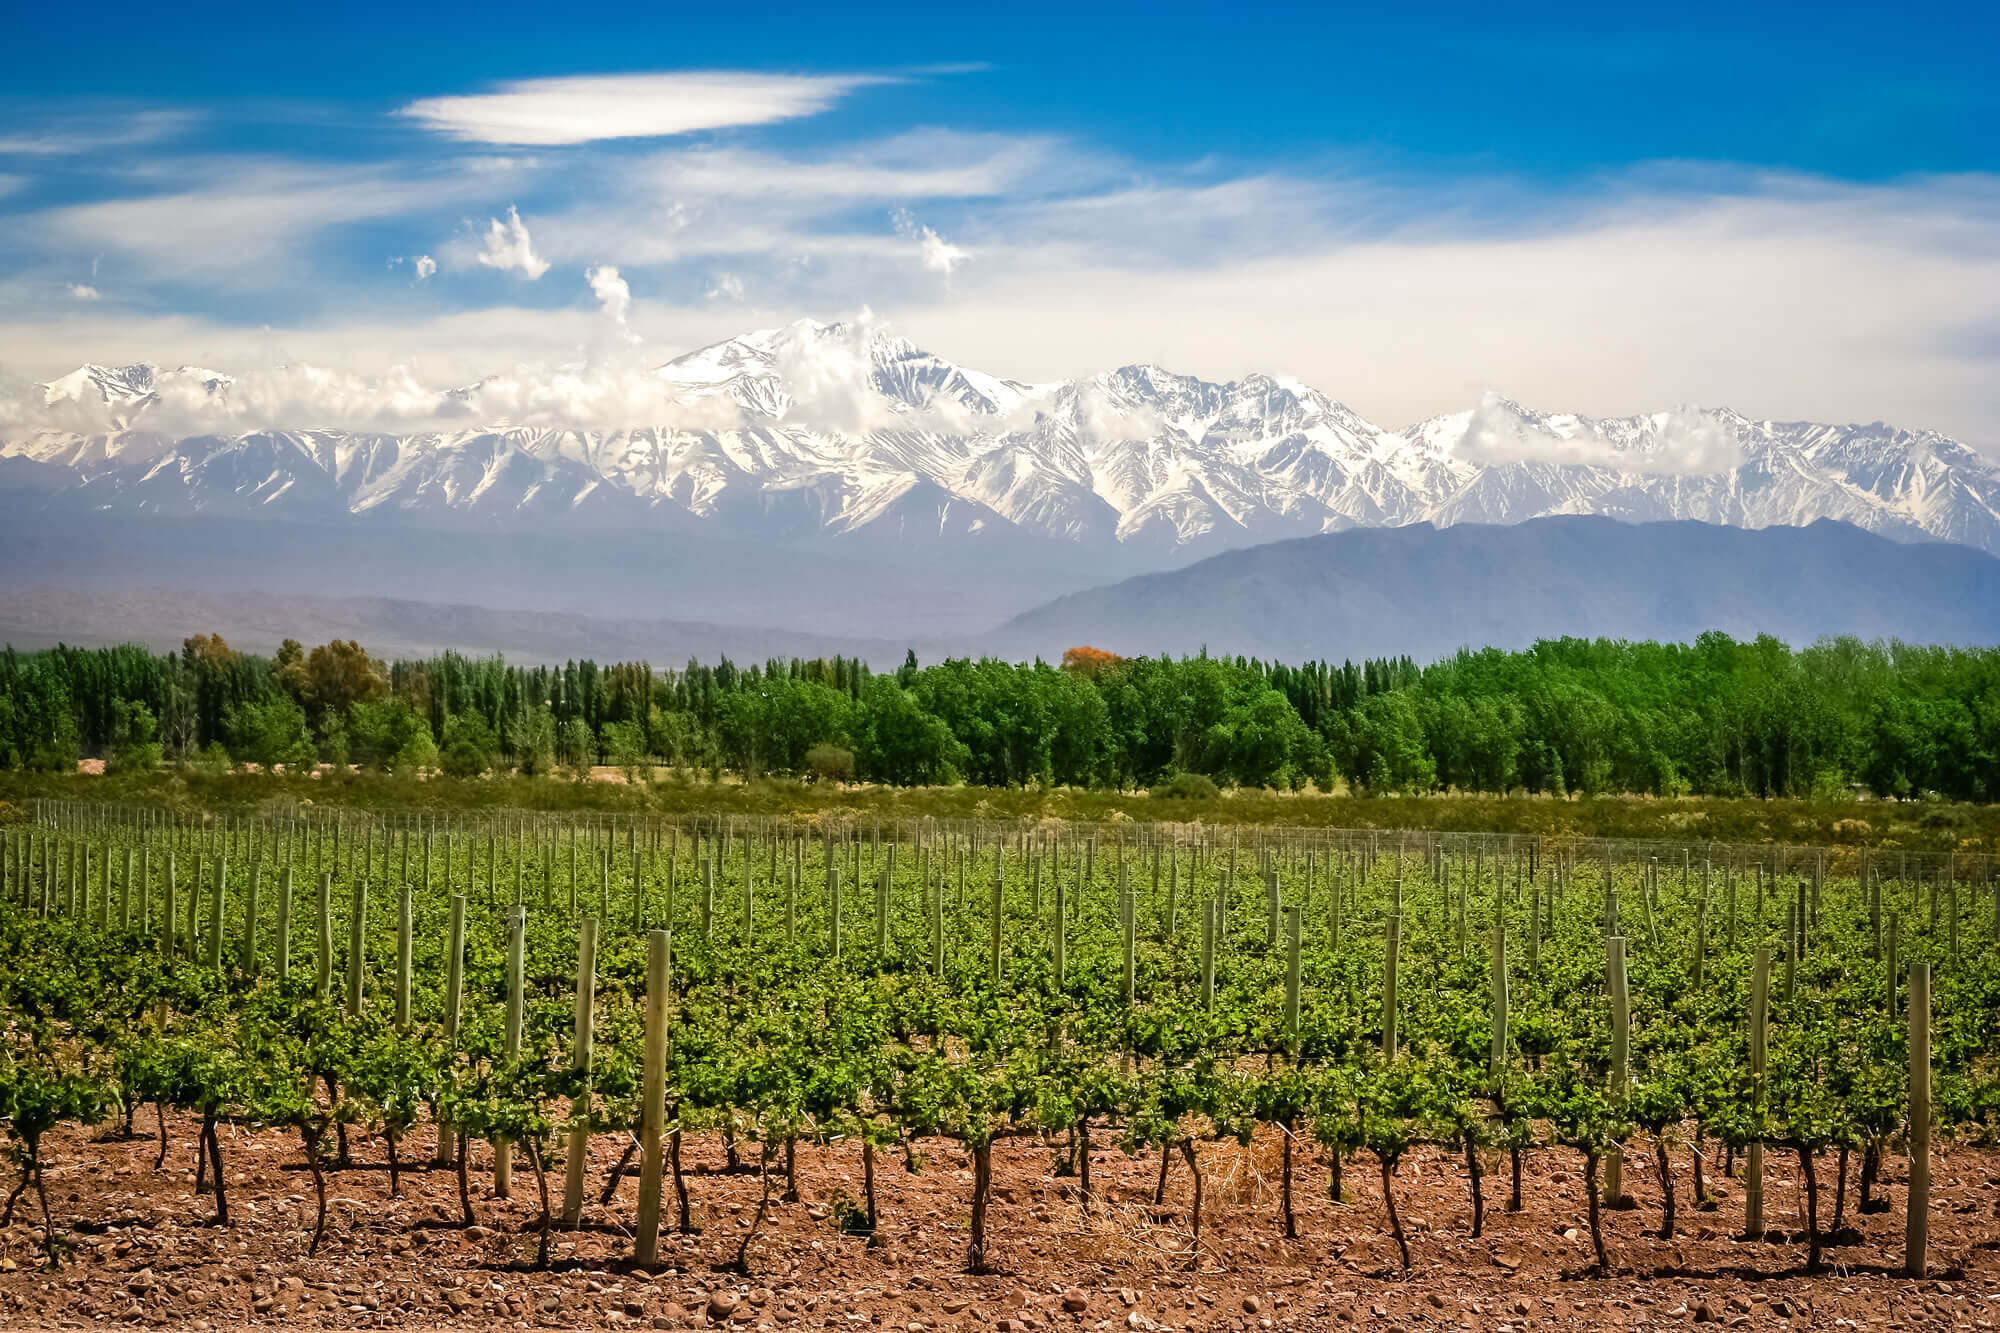 Organic vineyards Mendoza, Argentina